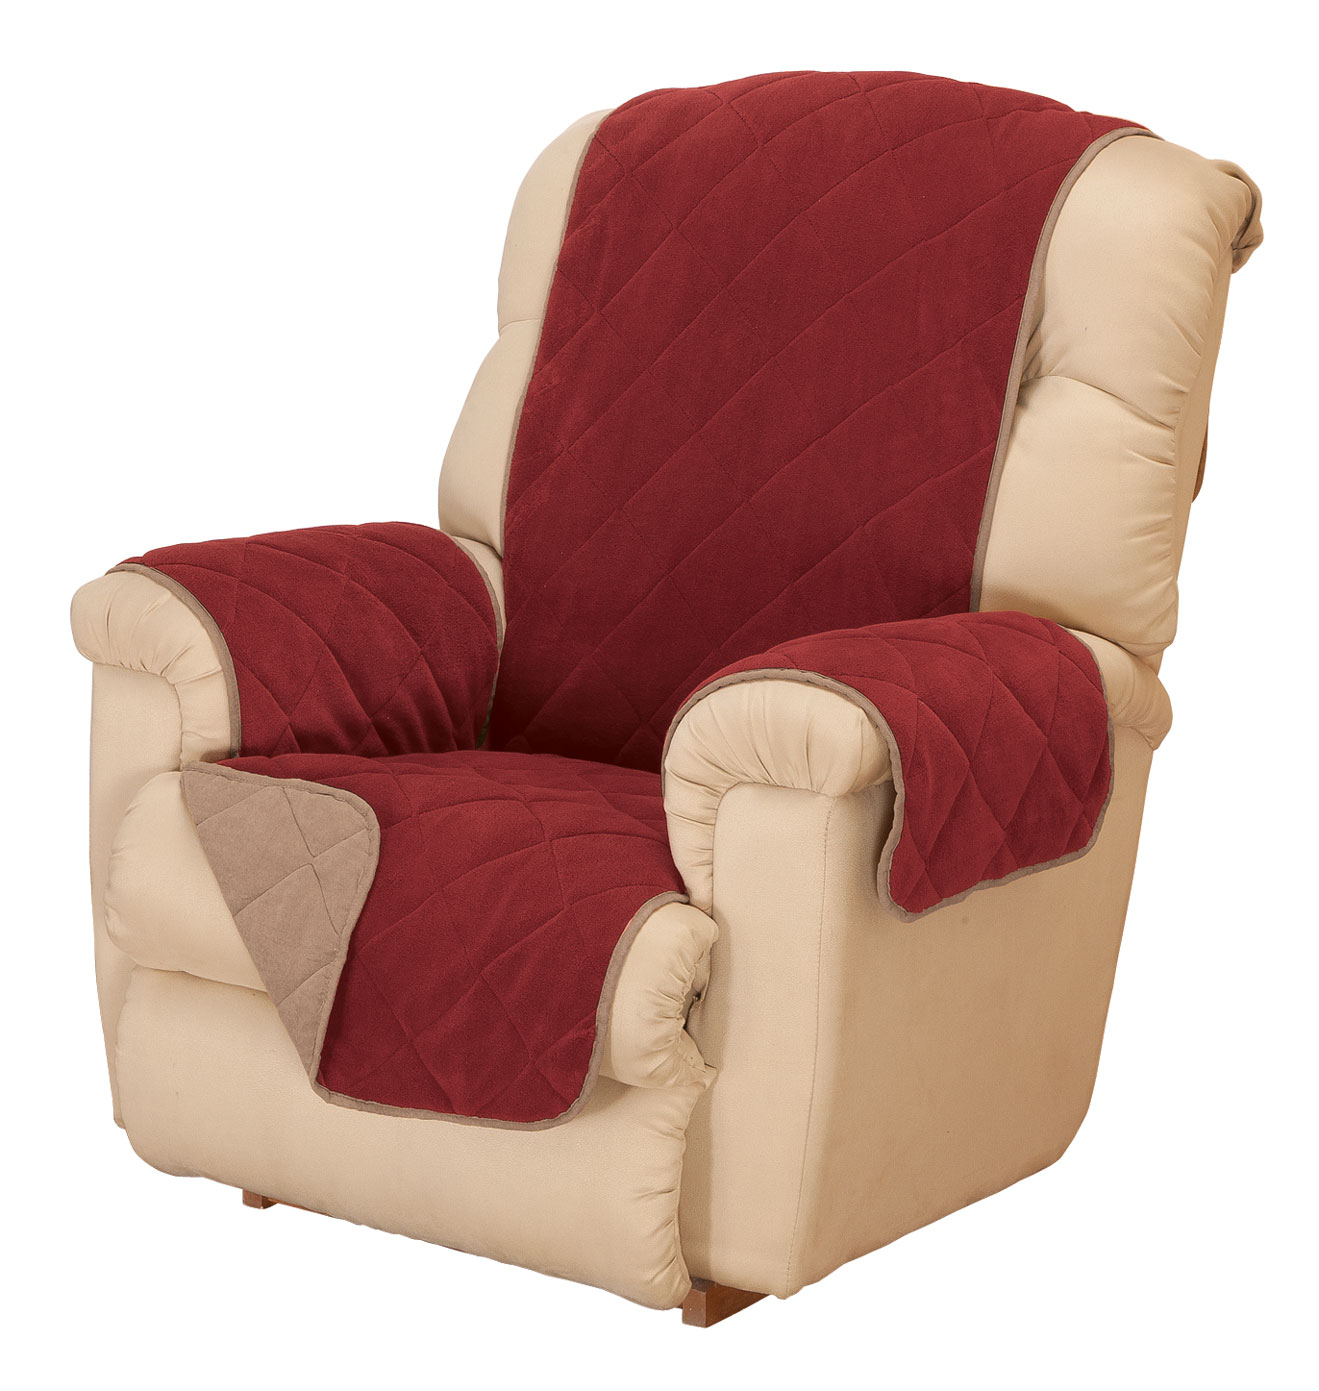 Plush to Suede Recliner Protector by OakRidgeTM